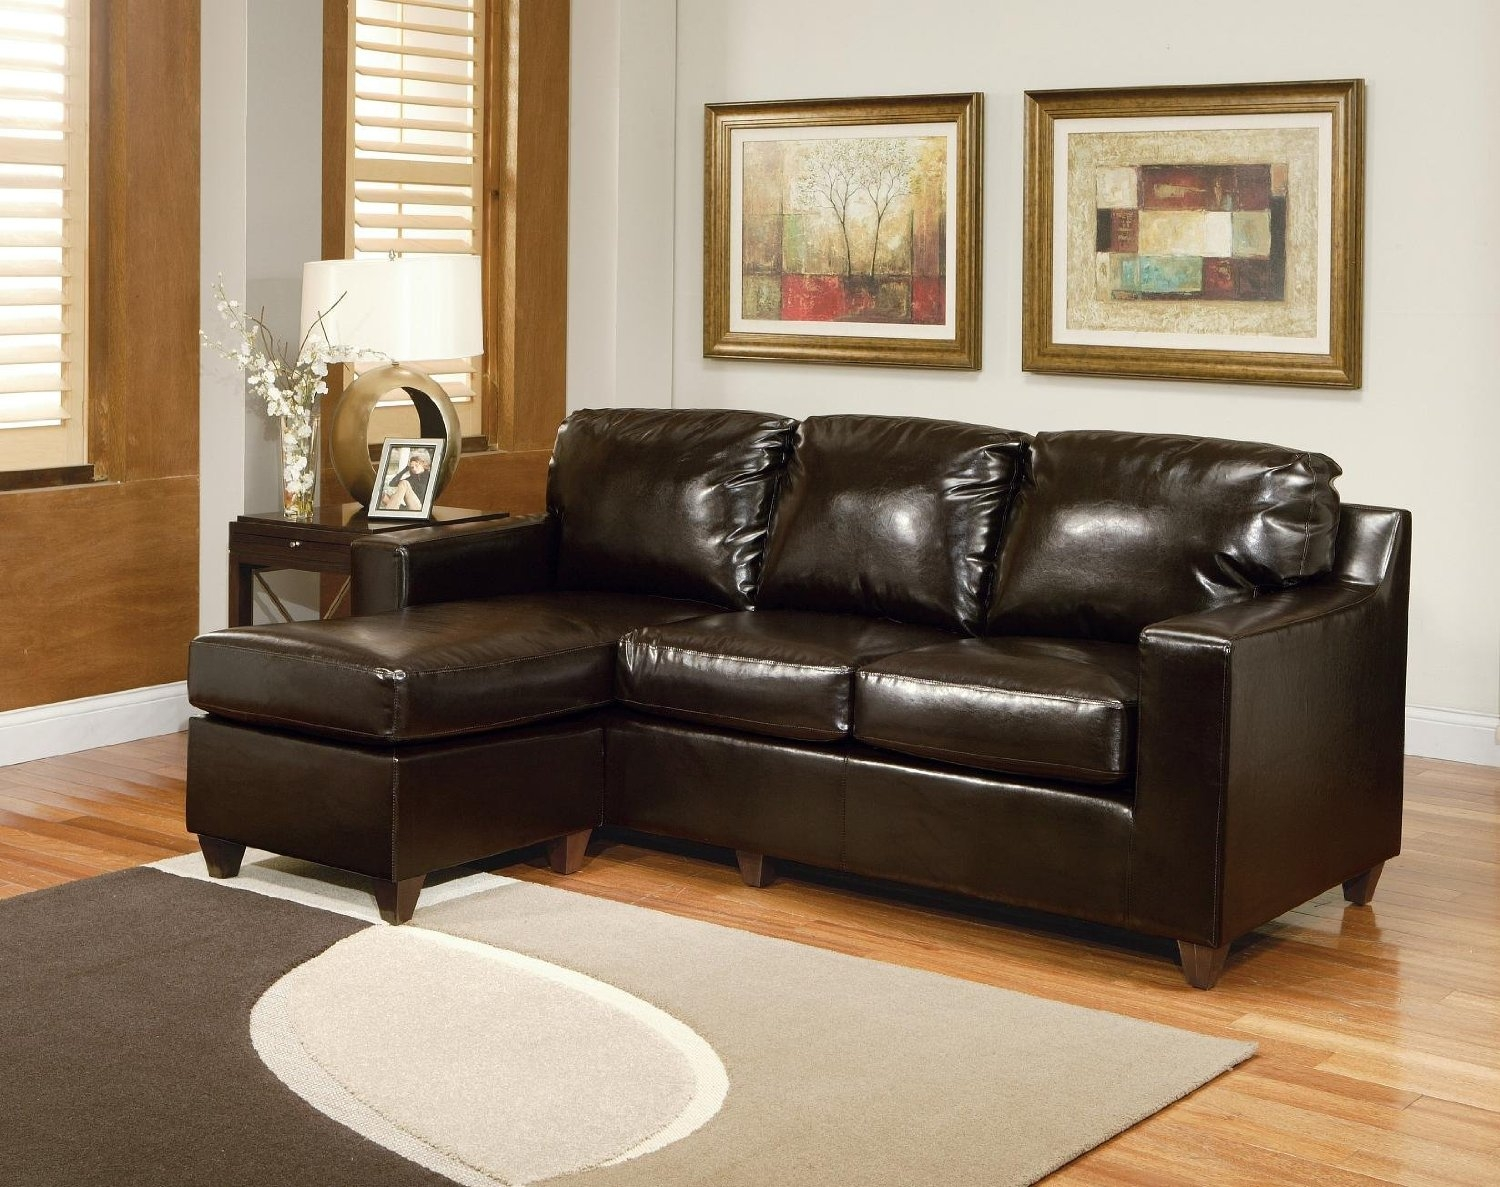 Simple Review About Living Room Furniture: Small Sectional ...